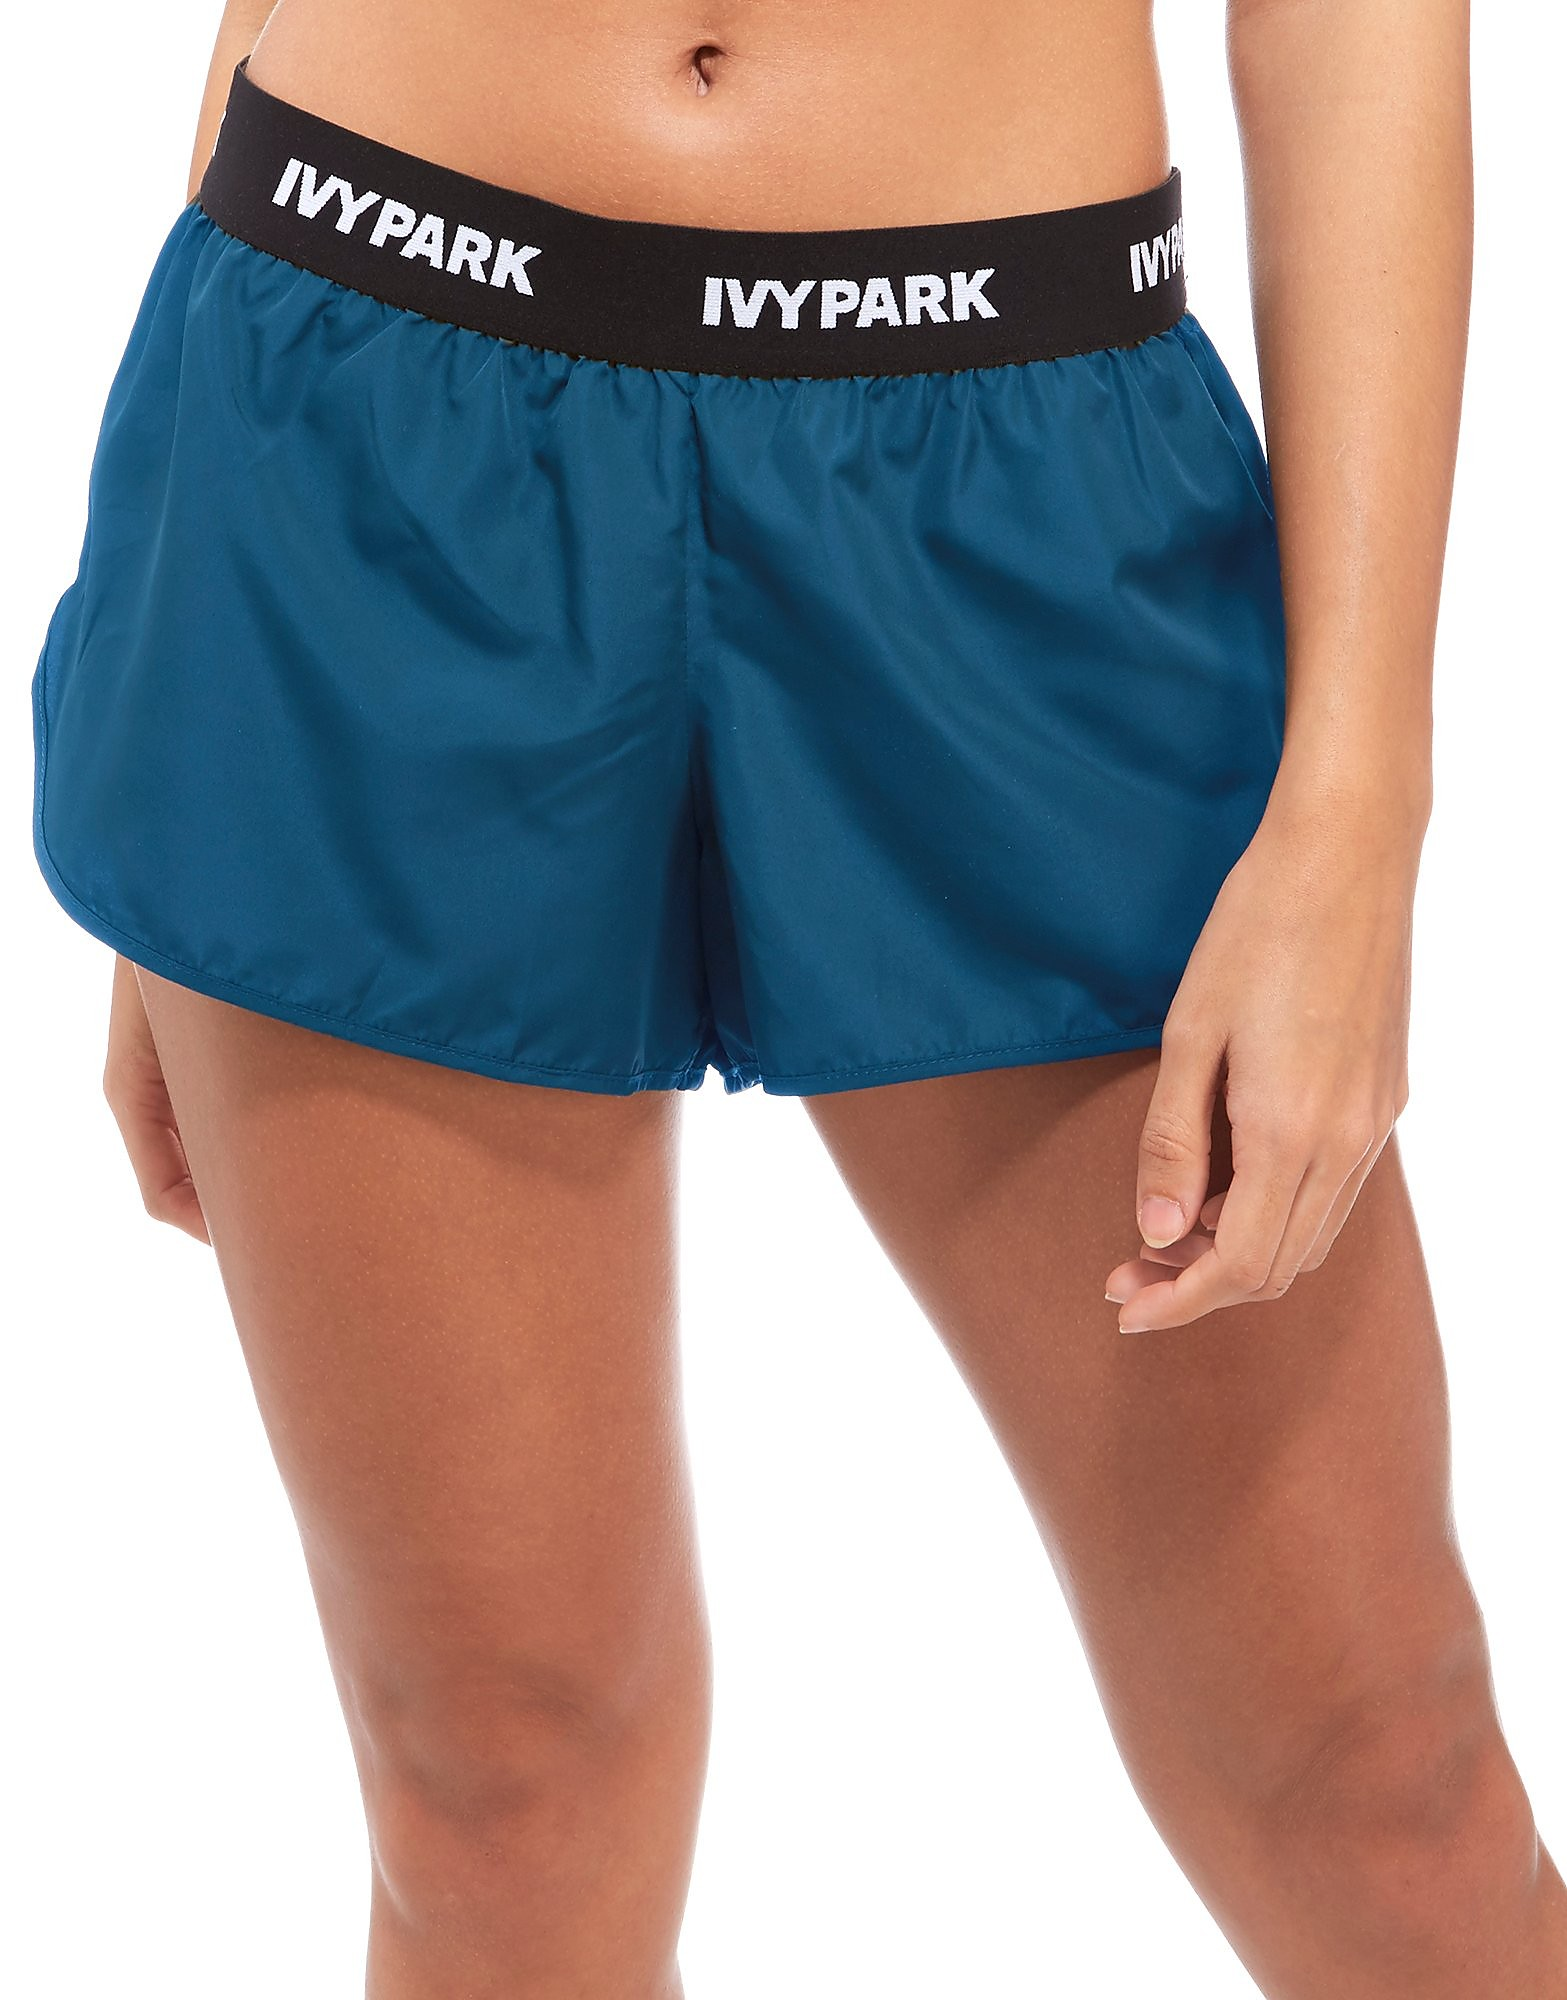 IVY PARK Runner Shorts Teal Black